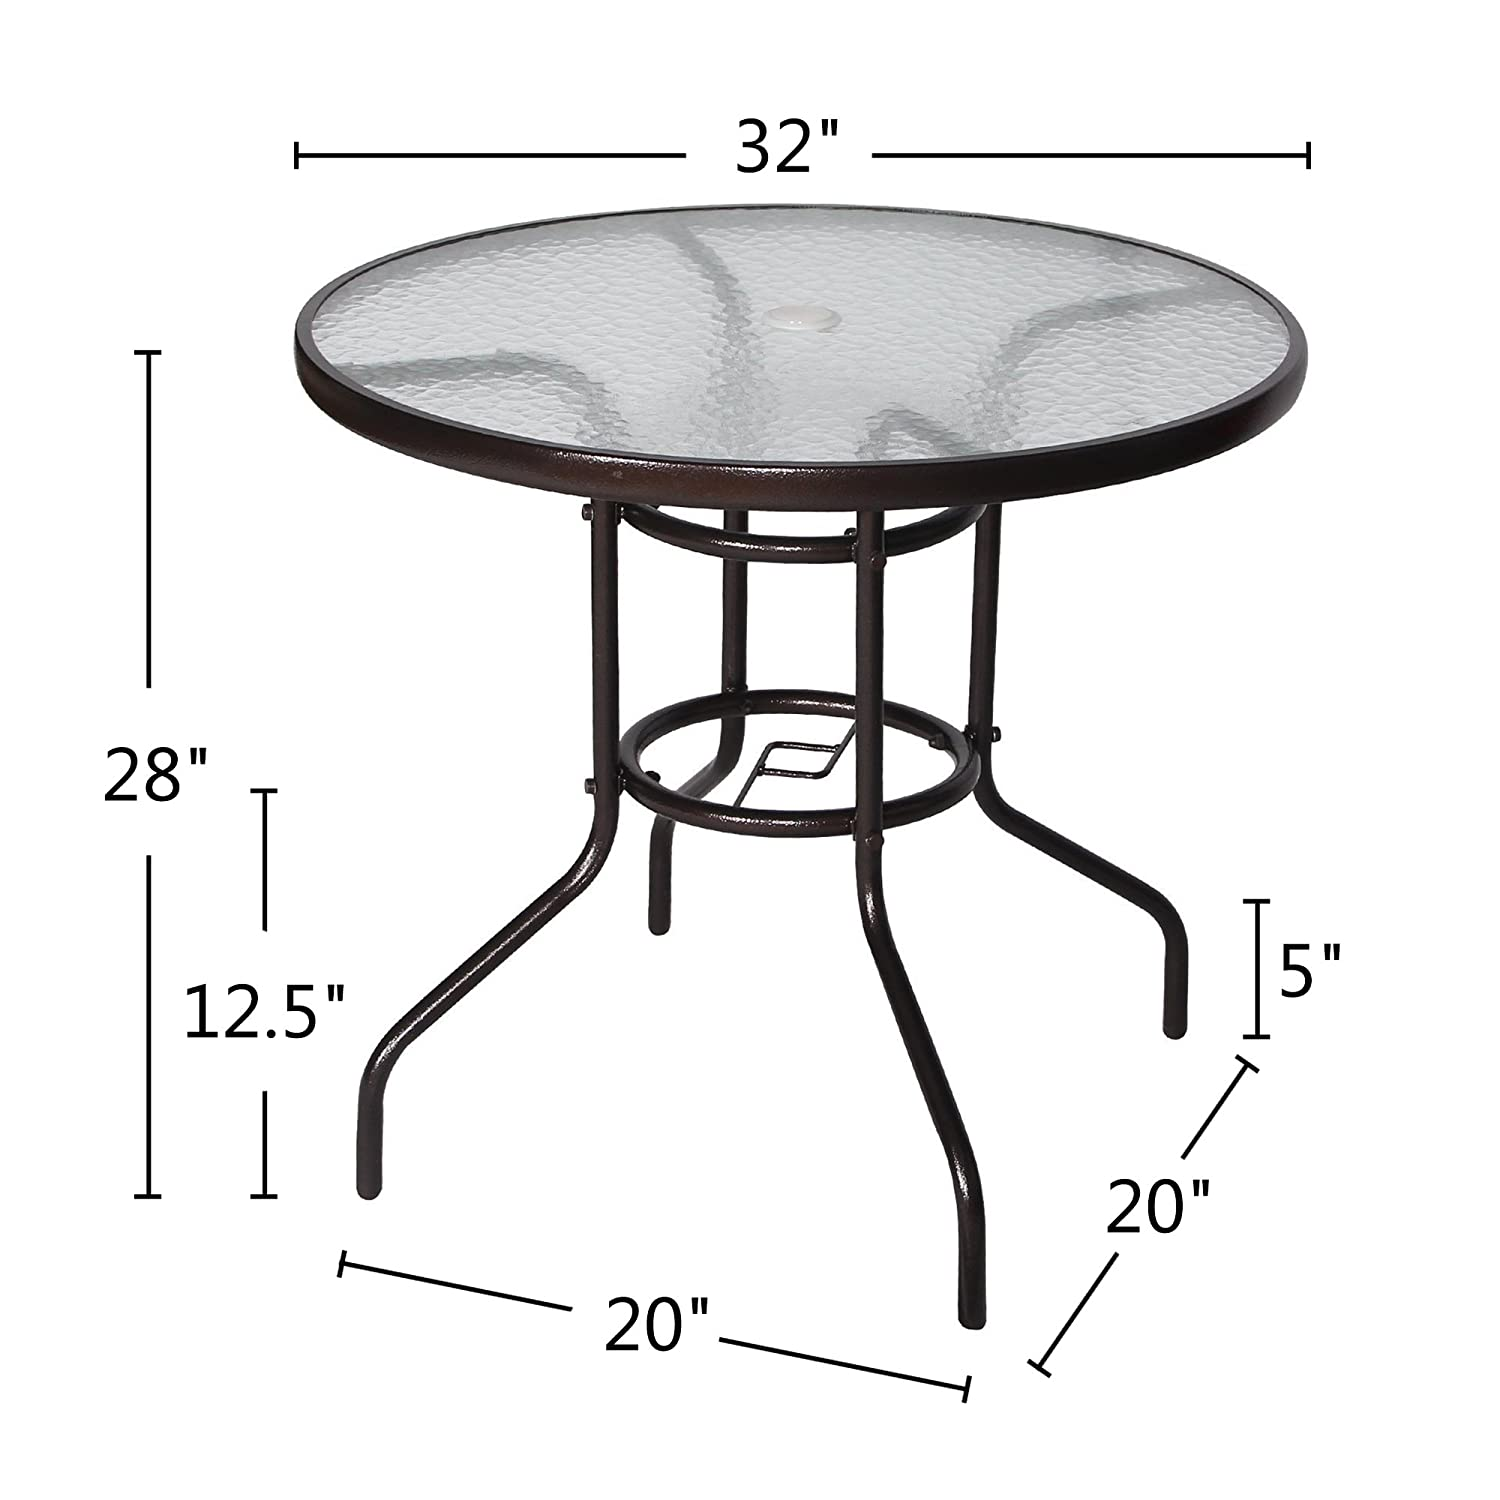 Cloud mountain 32 outdoor dining table patio tempered glass table patio bistro table top umbrella stand round table deck garden home furniture table